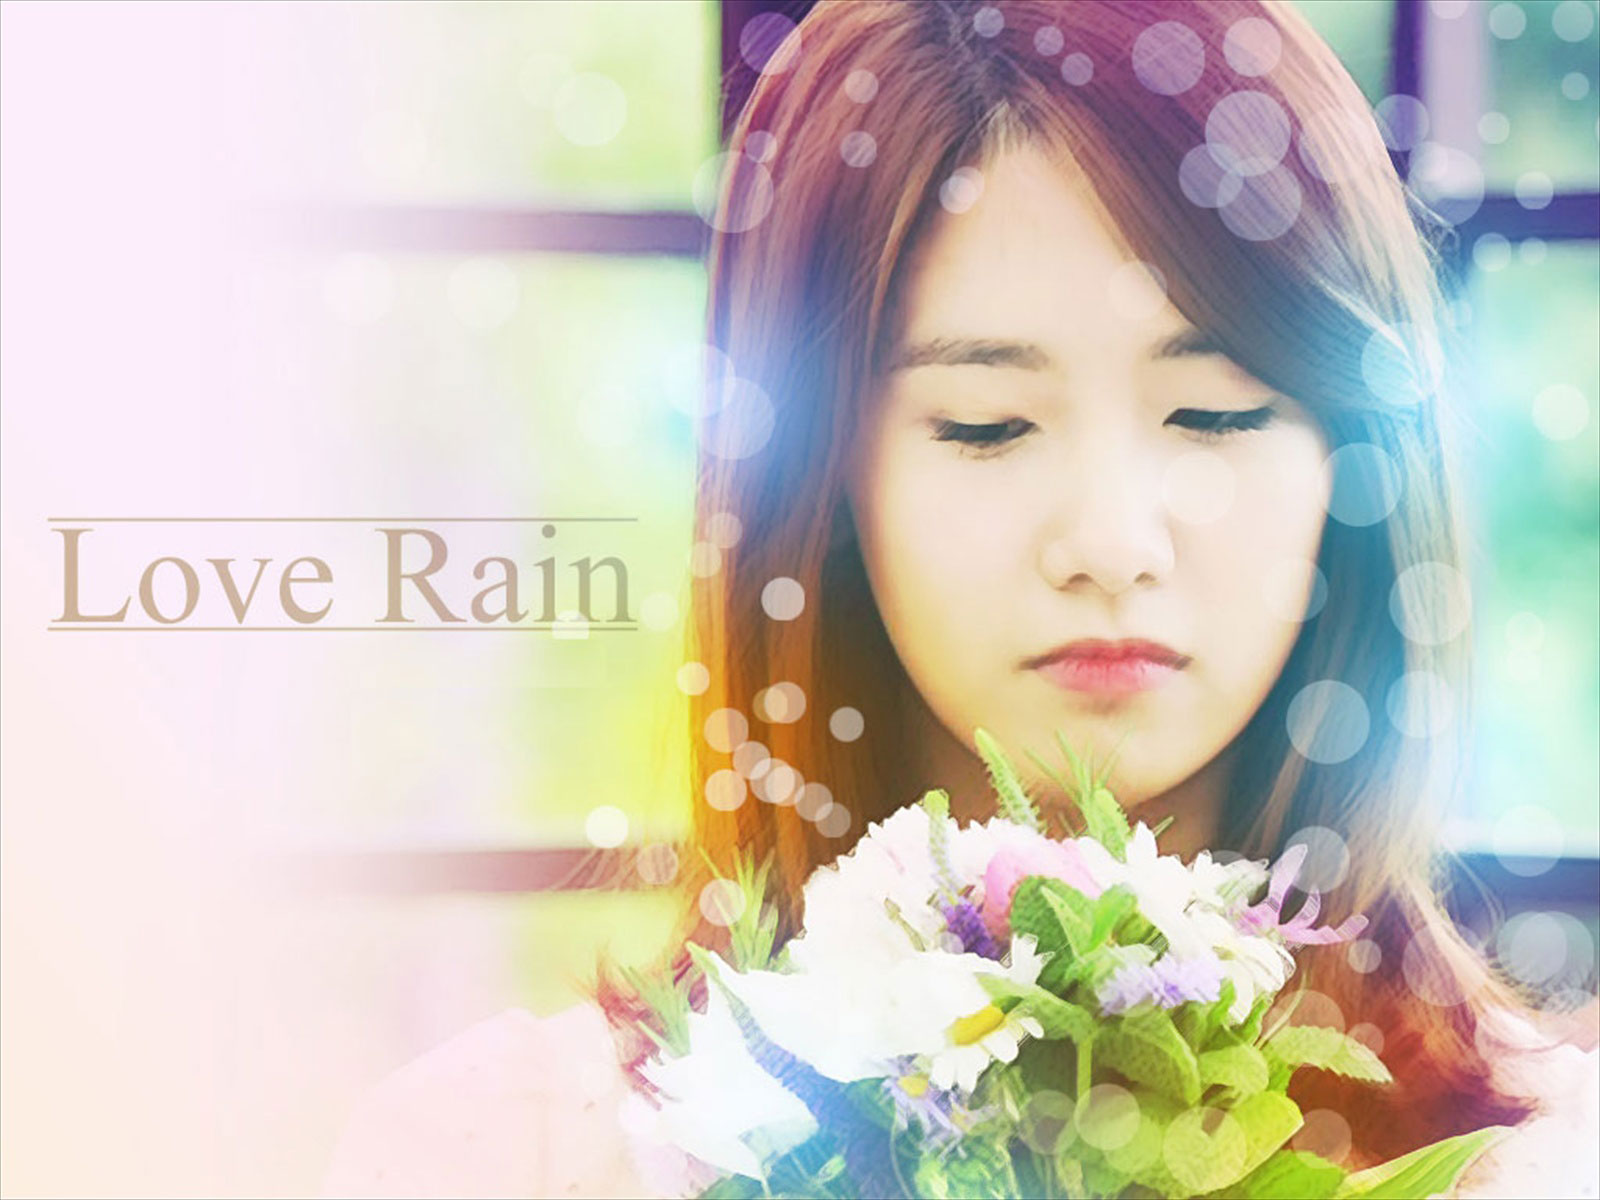 Love Rain Wallpaper Hd : Love Rain Wallpaper